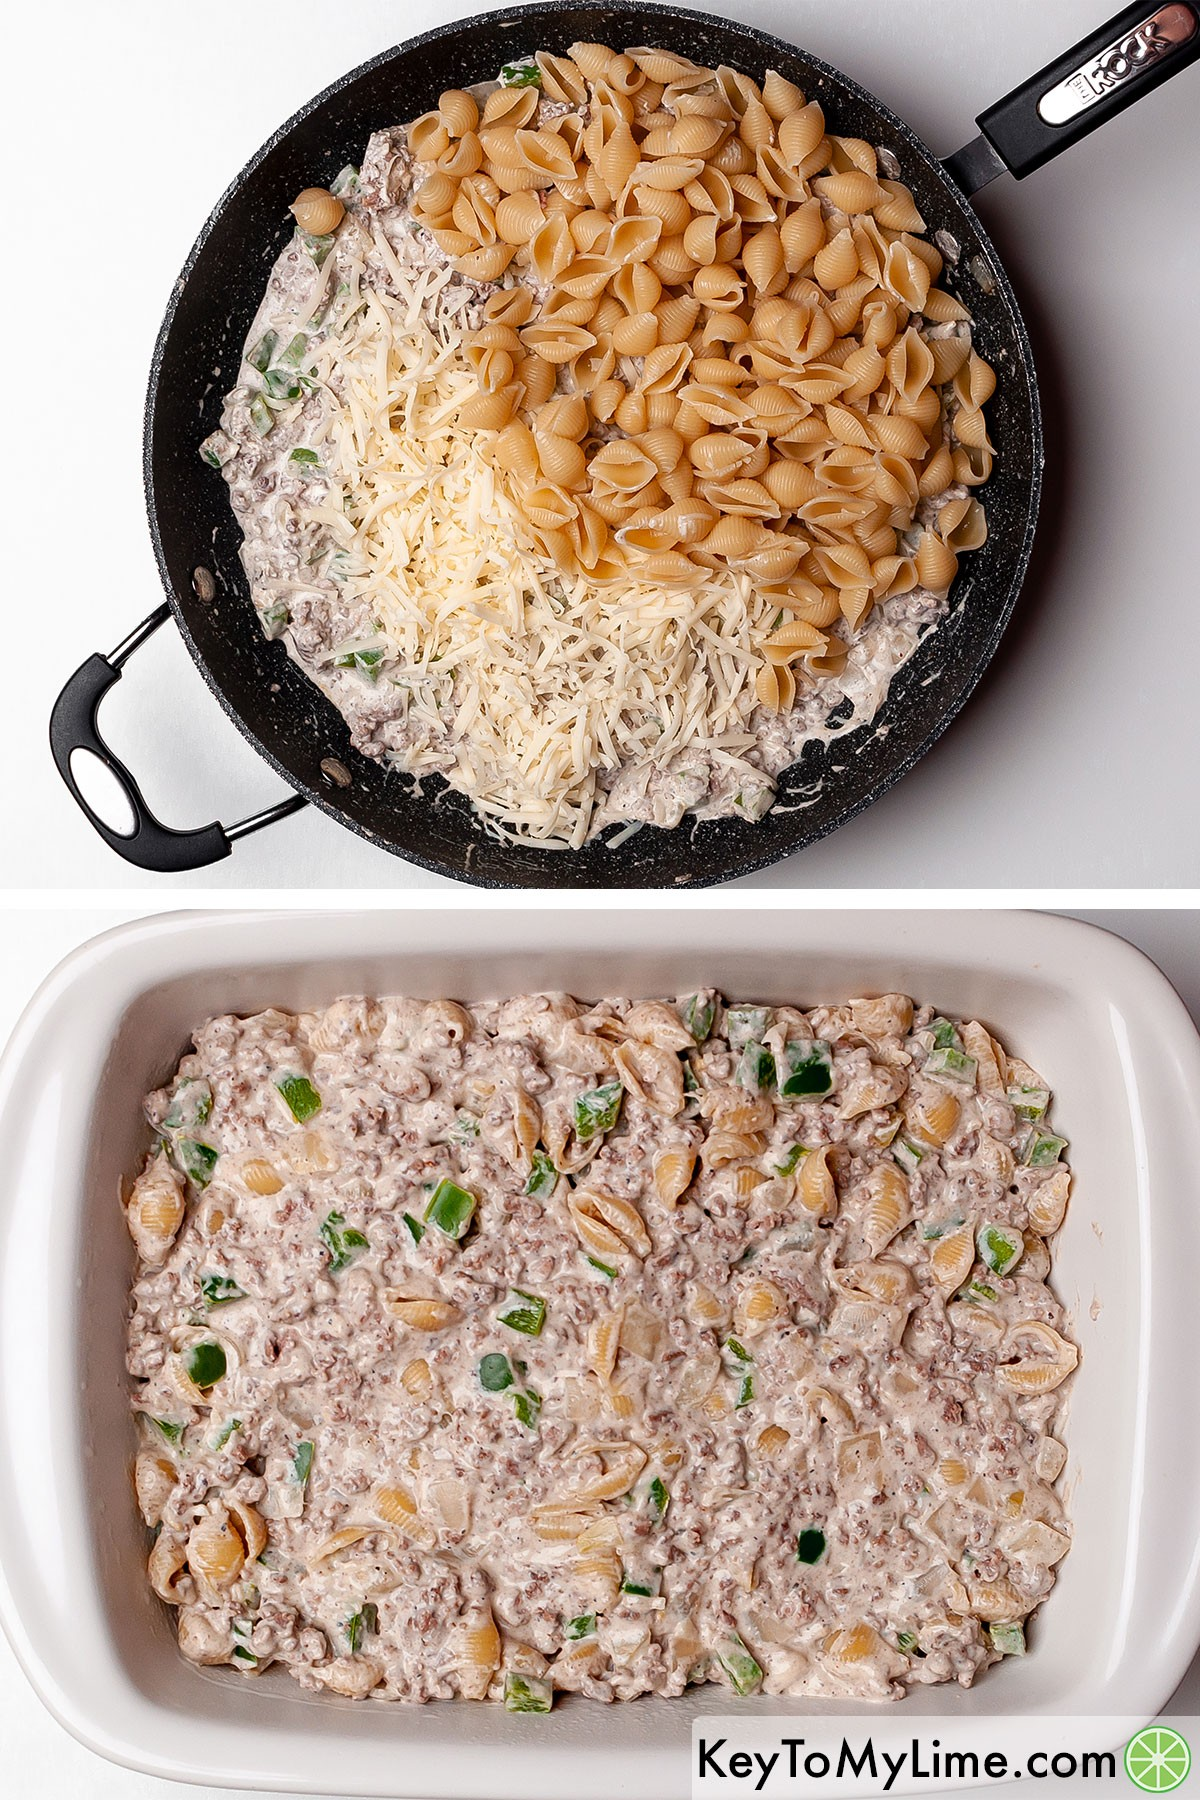 Mixing cooked pasta and shredded mozzarella into cheesesteak casserole filling.